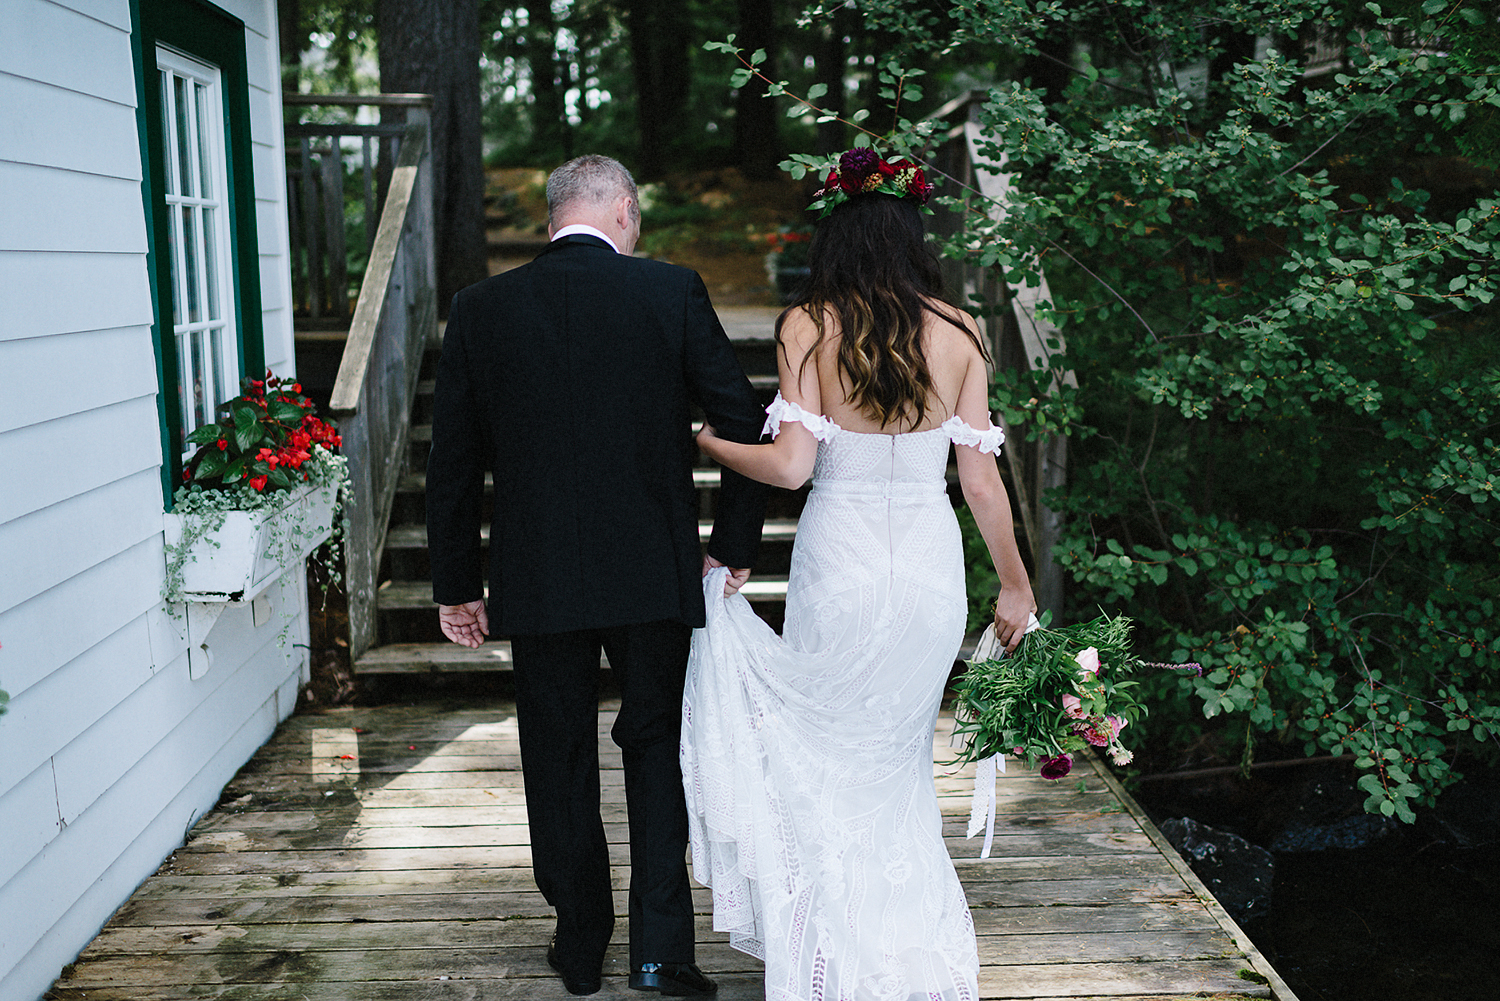 Muskoka-Cottage-Wedding-Photography-Photographer_Photojournalistic-Documentary-Wedding-Photography_Vintage-Bride-Lovers-Land-Dress_Rue-Des-Seins_Forest-Ceremony-Father-and-Bride.jpg